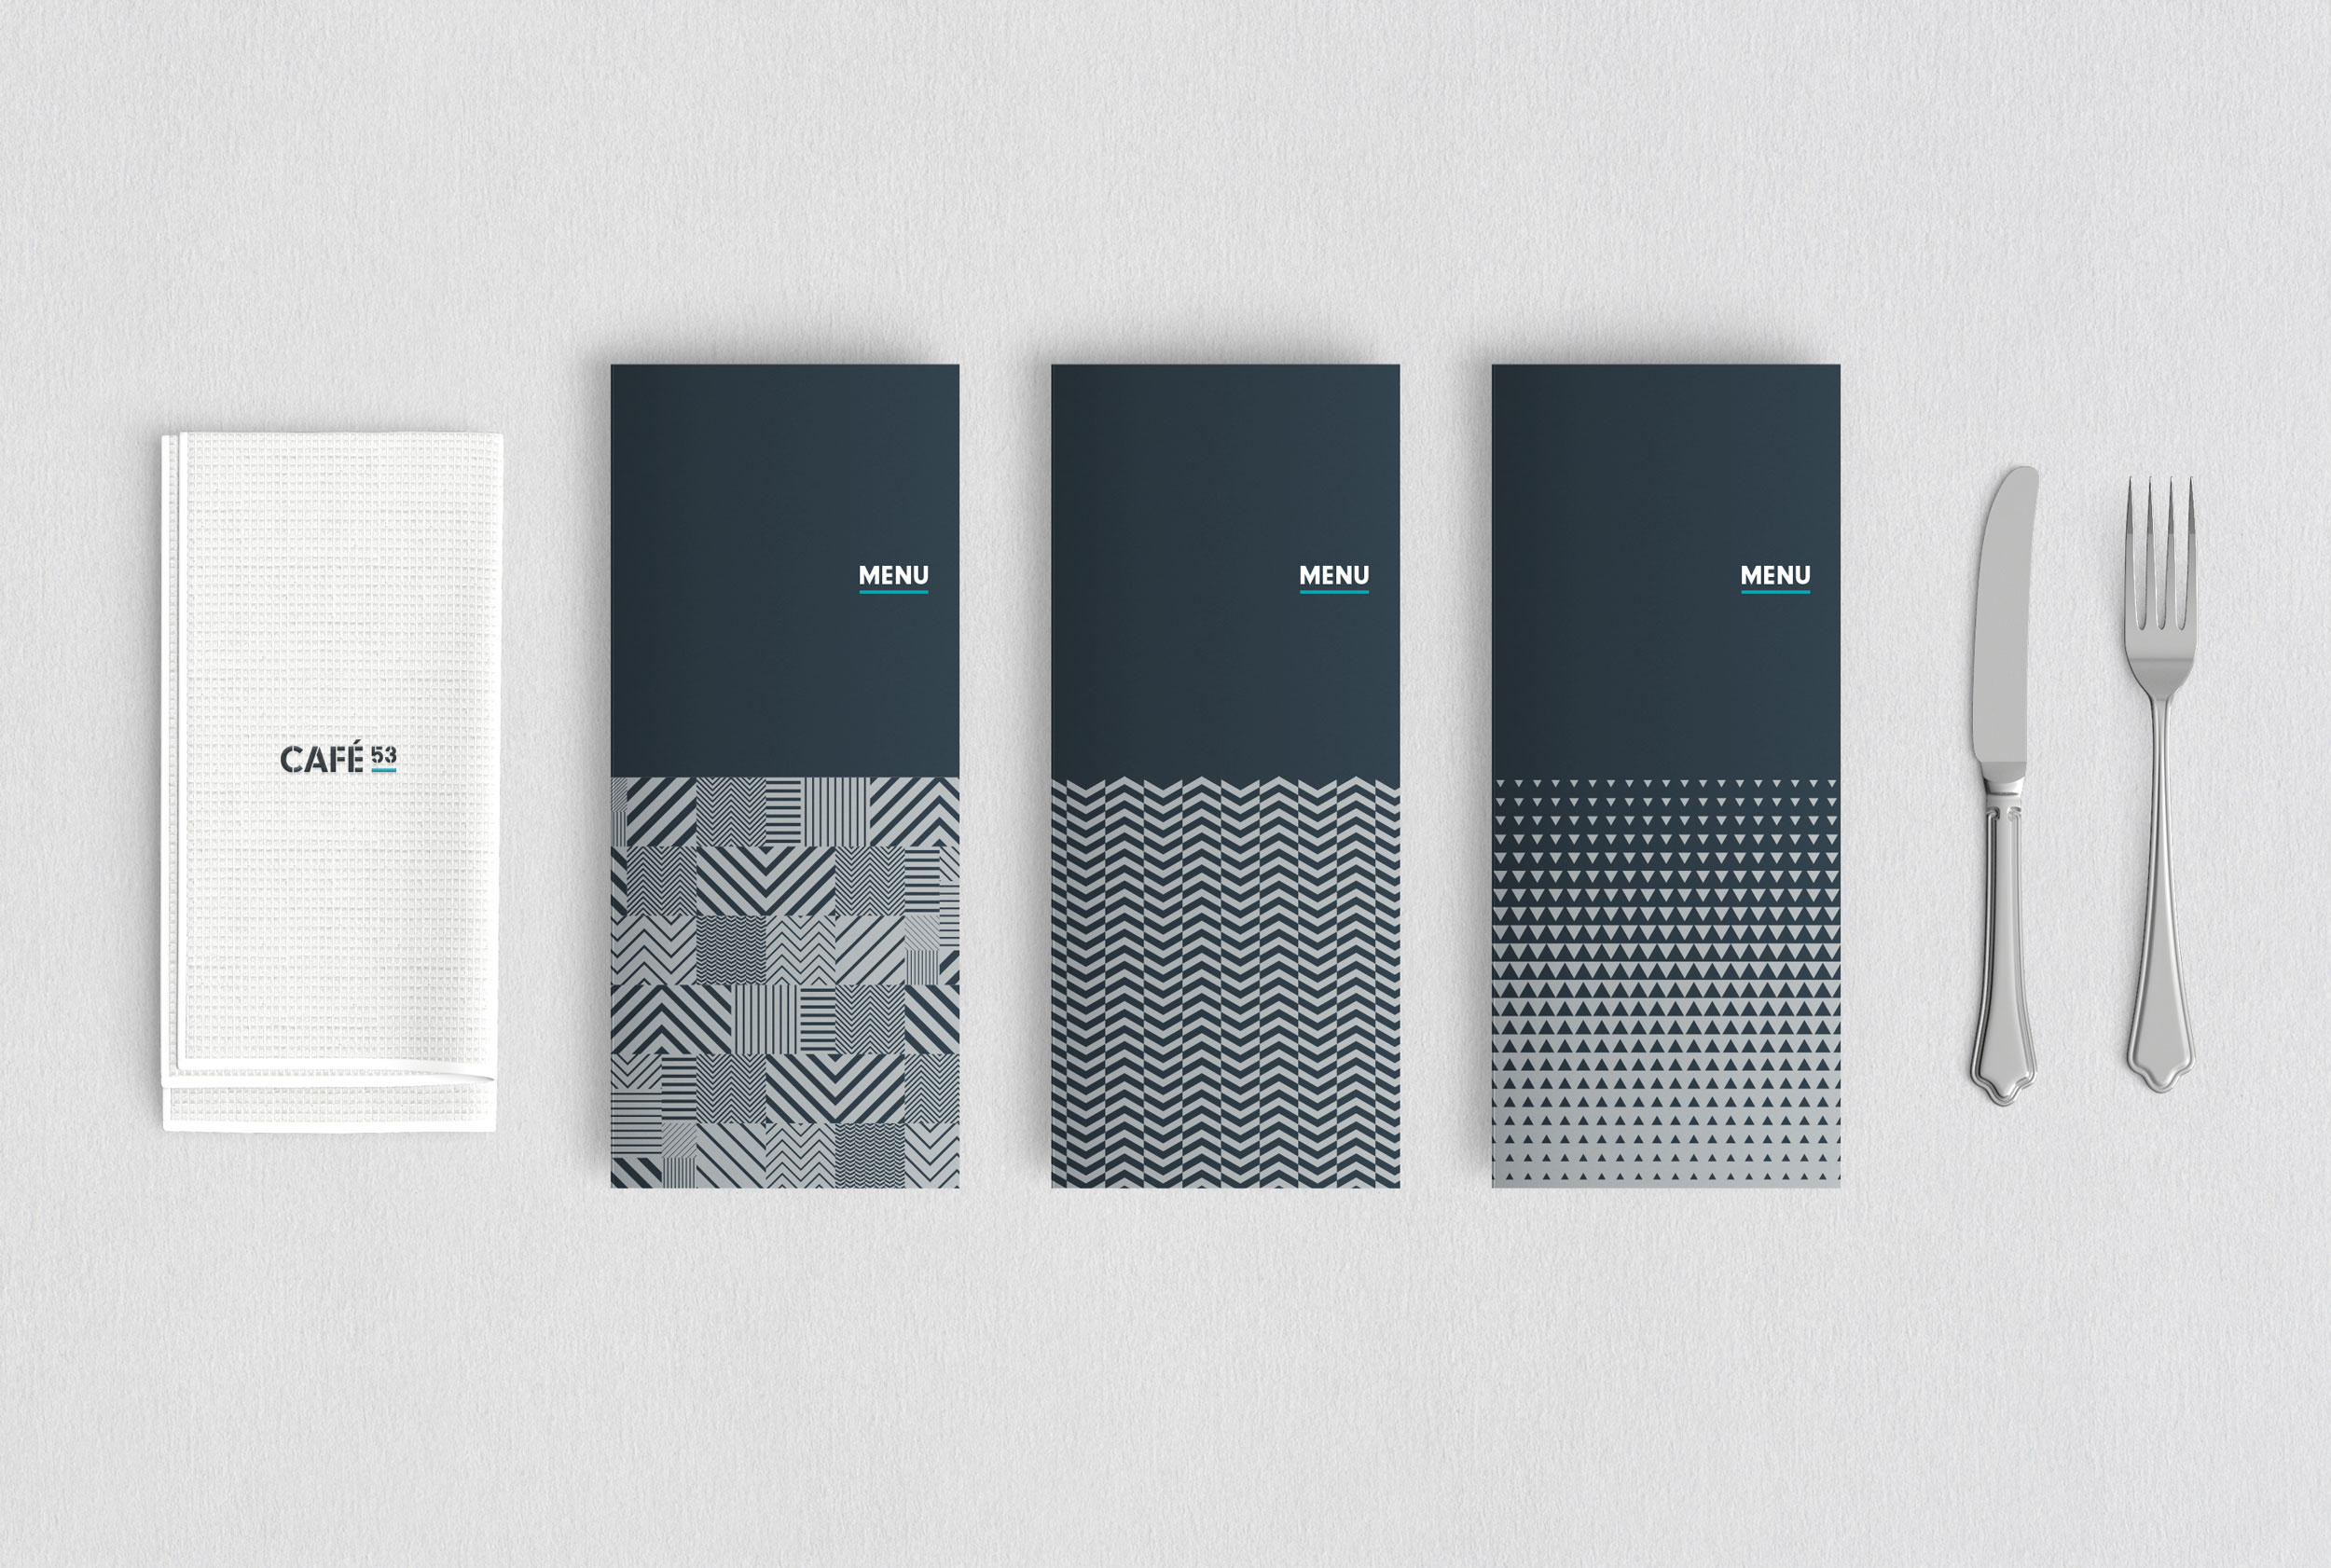 Flight Deck 53 Cafe identity and menus – Design by Ian Whalley